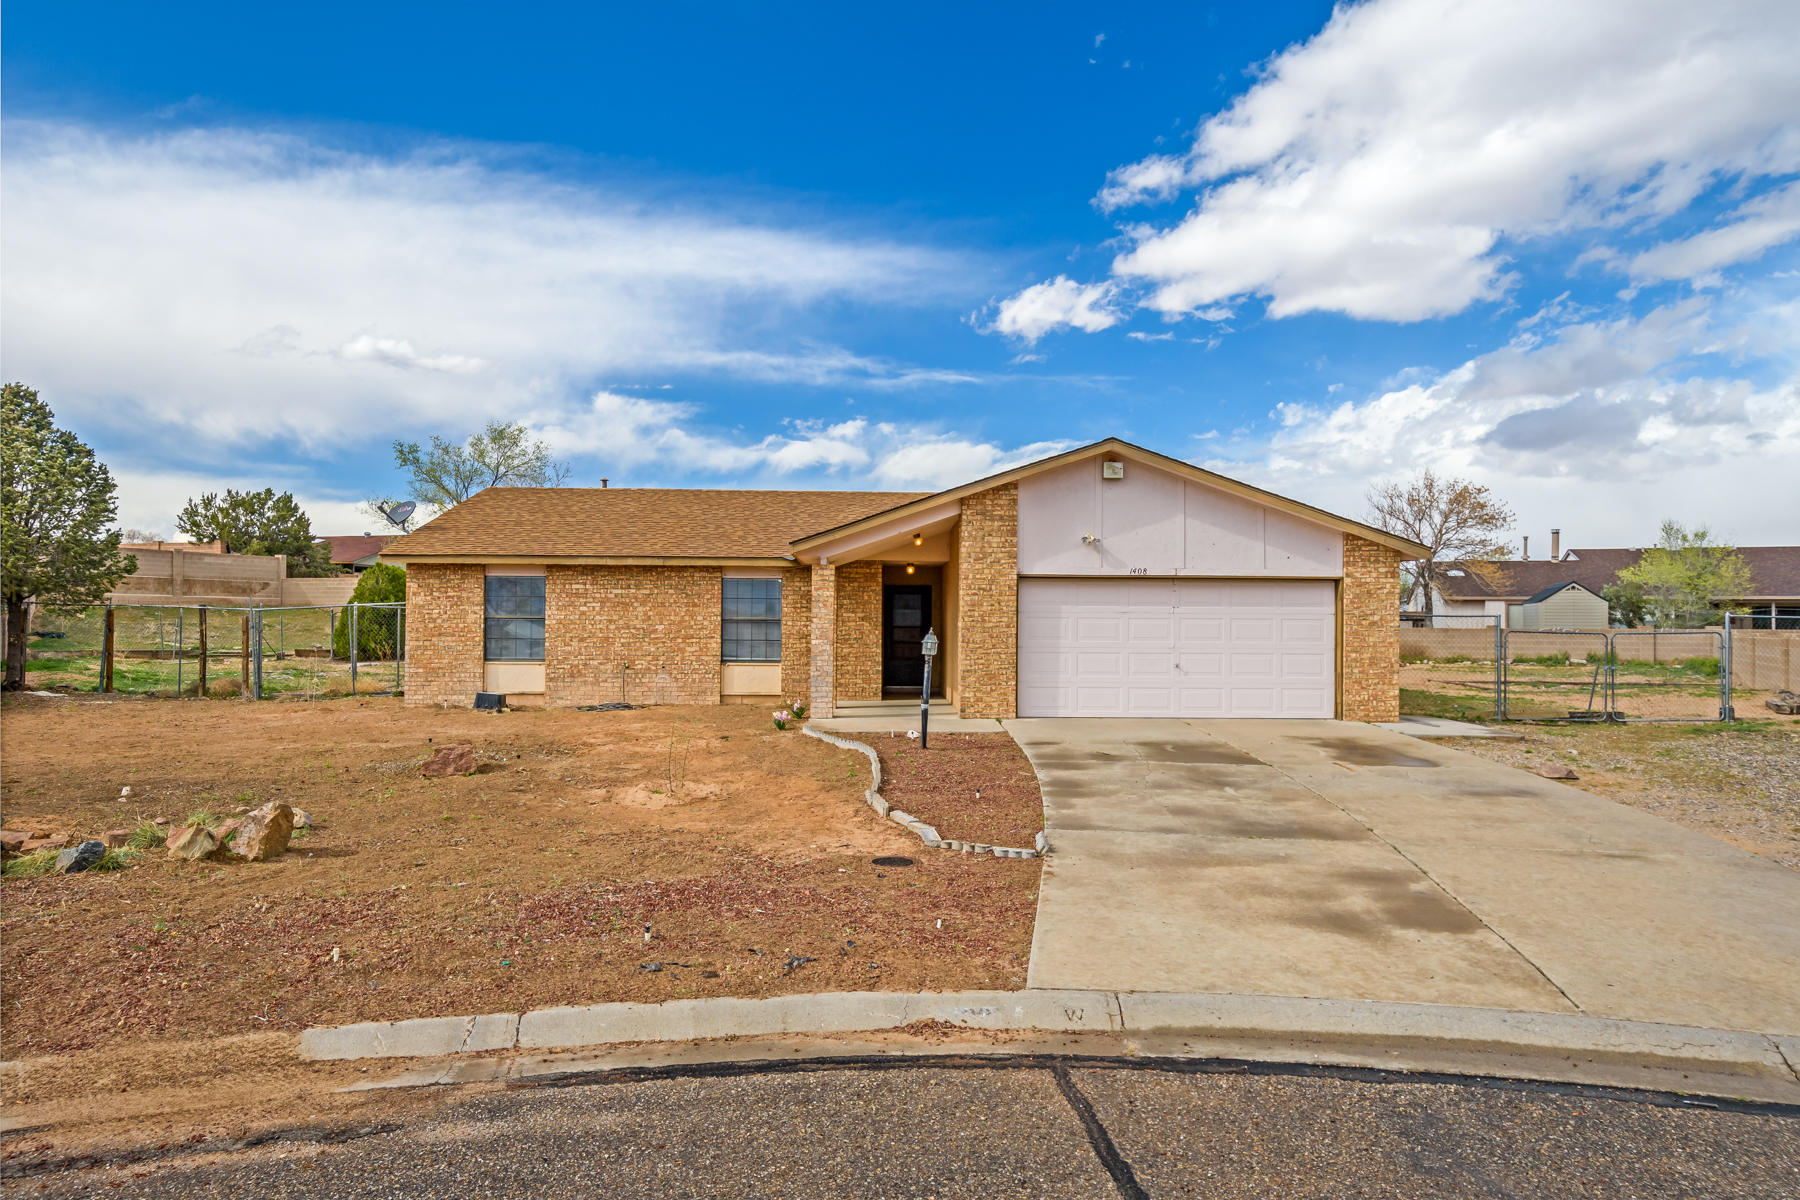 1408 TEAL Place, Rio Rancho NM 87144